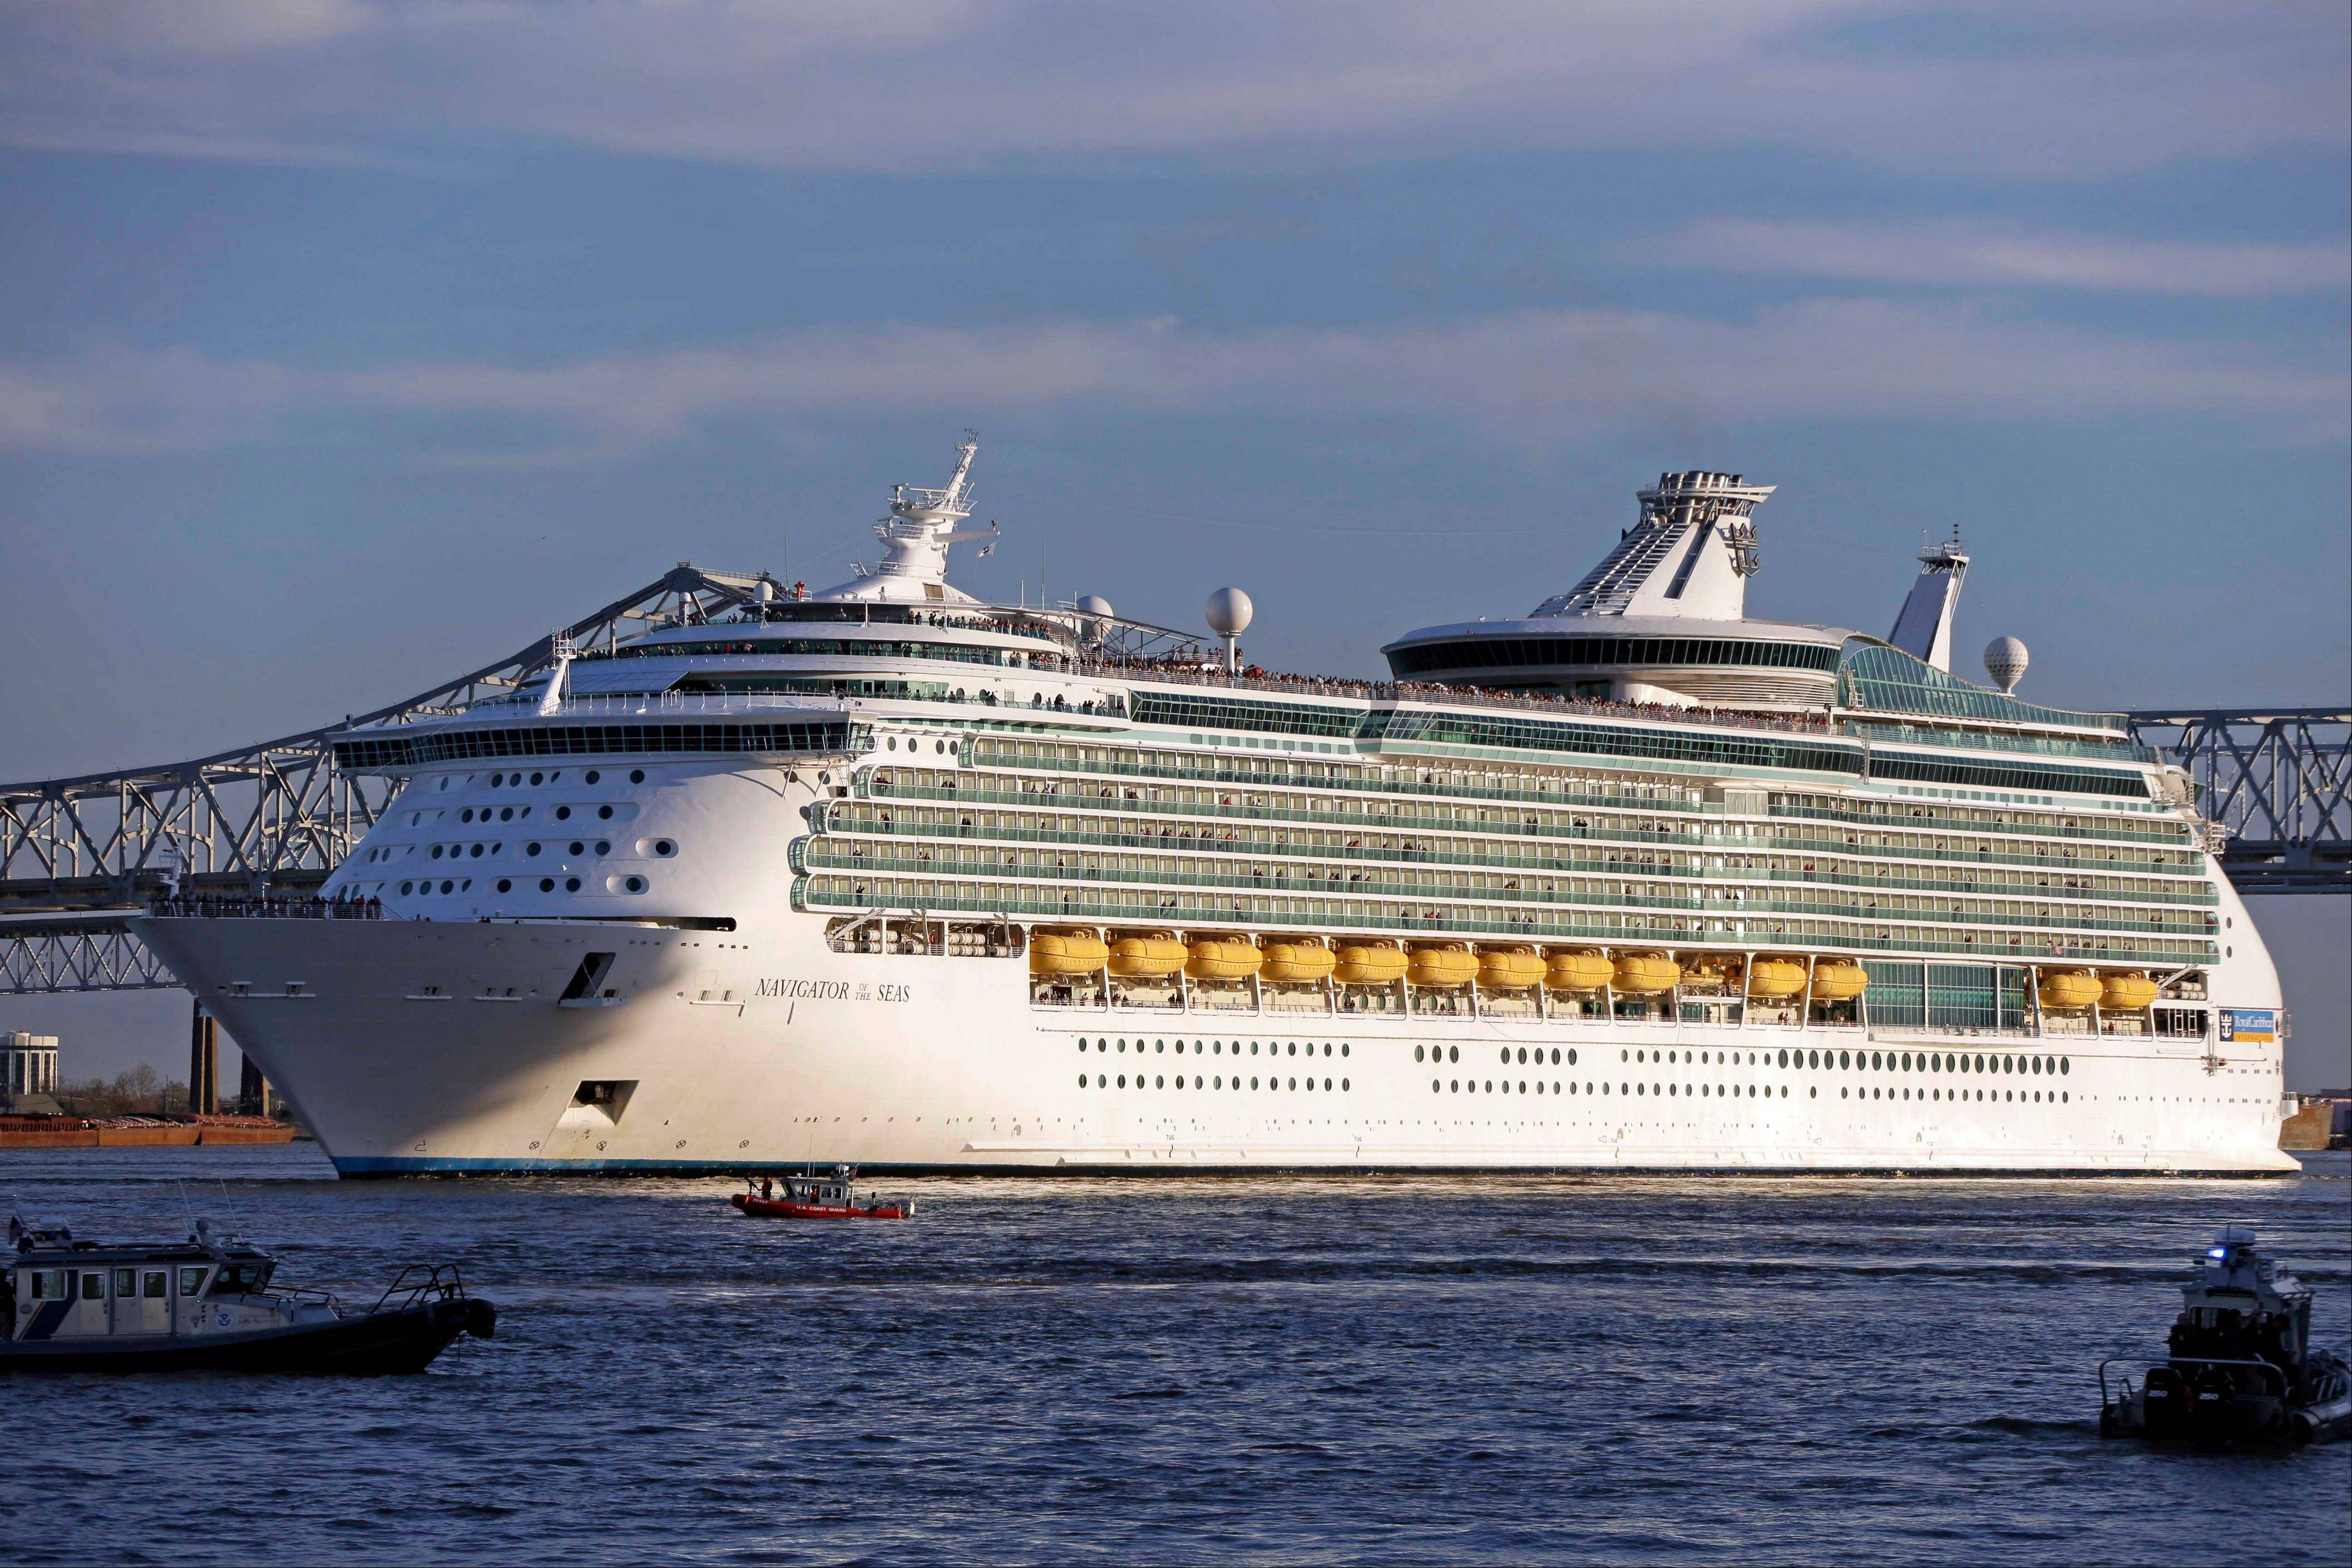 Royal Caribbean is one of a number of companies in the travel industry participating in CyberMonday this year with a variety of online deals for holiday shoppers.